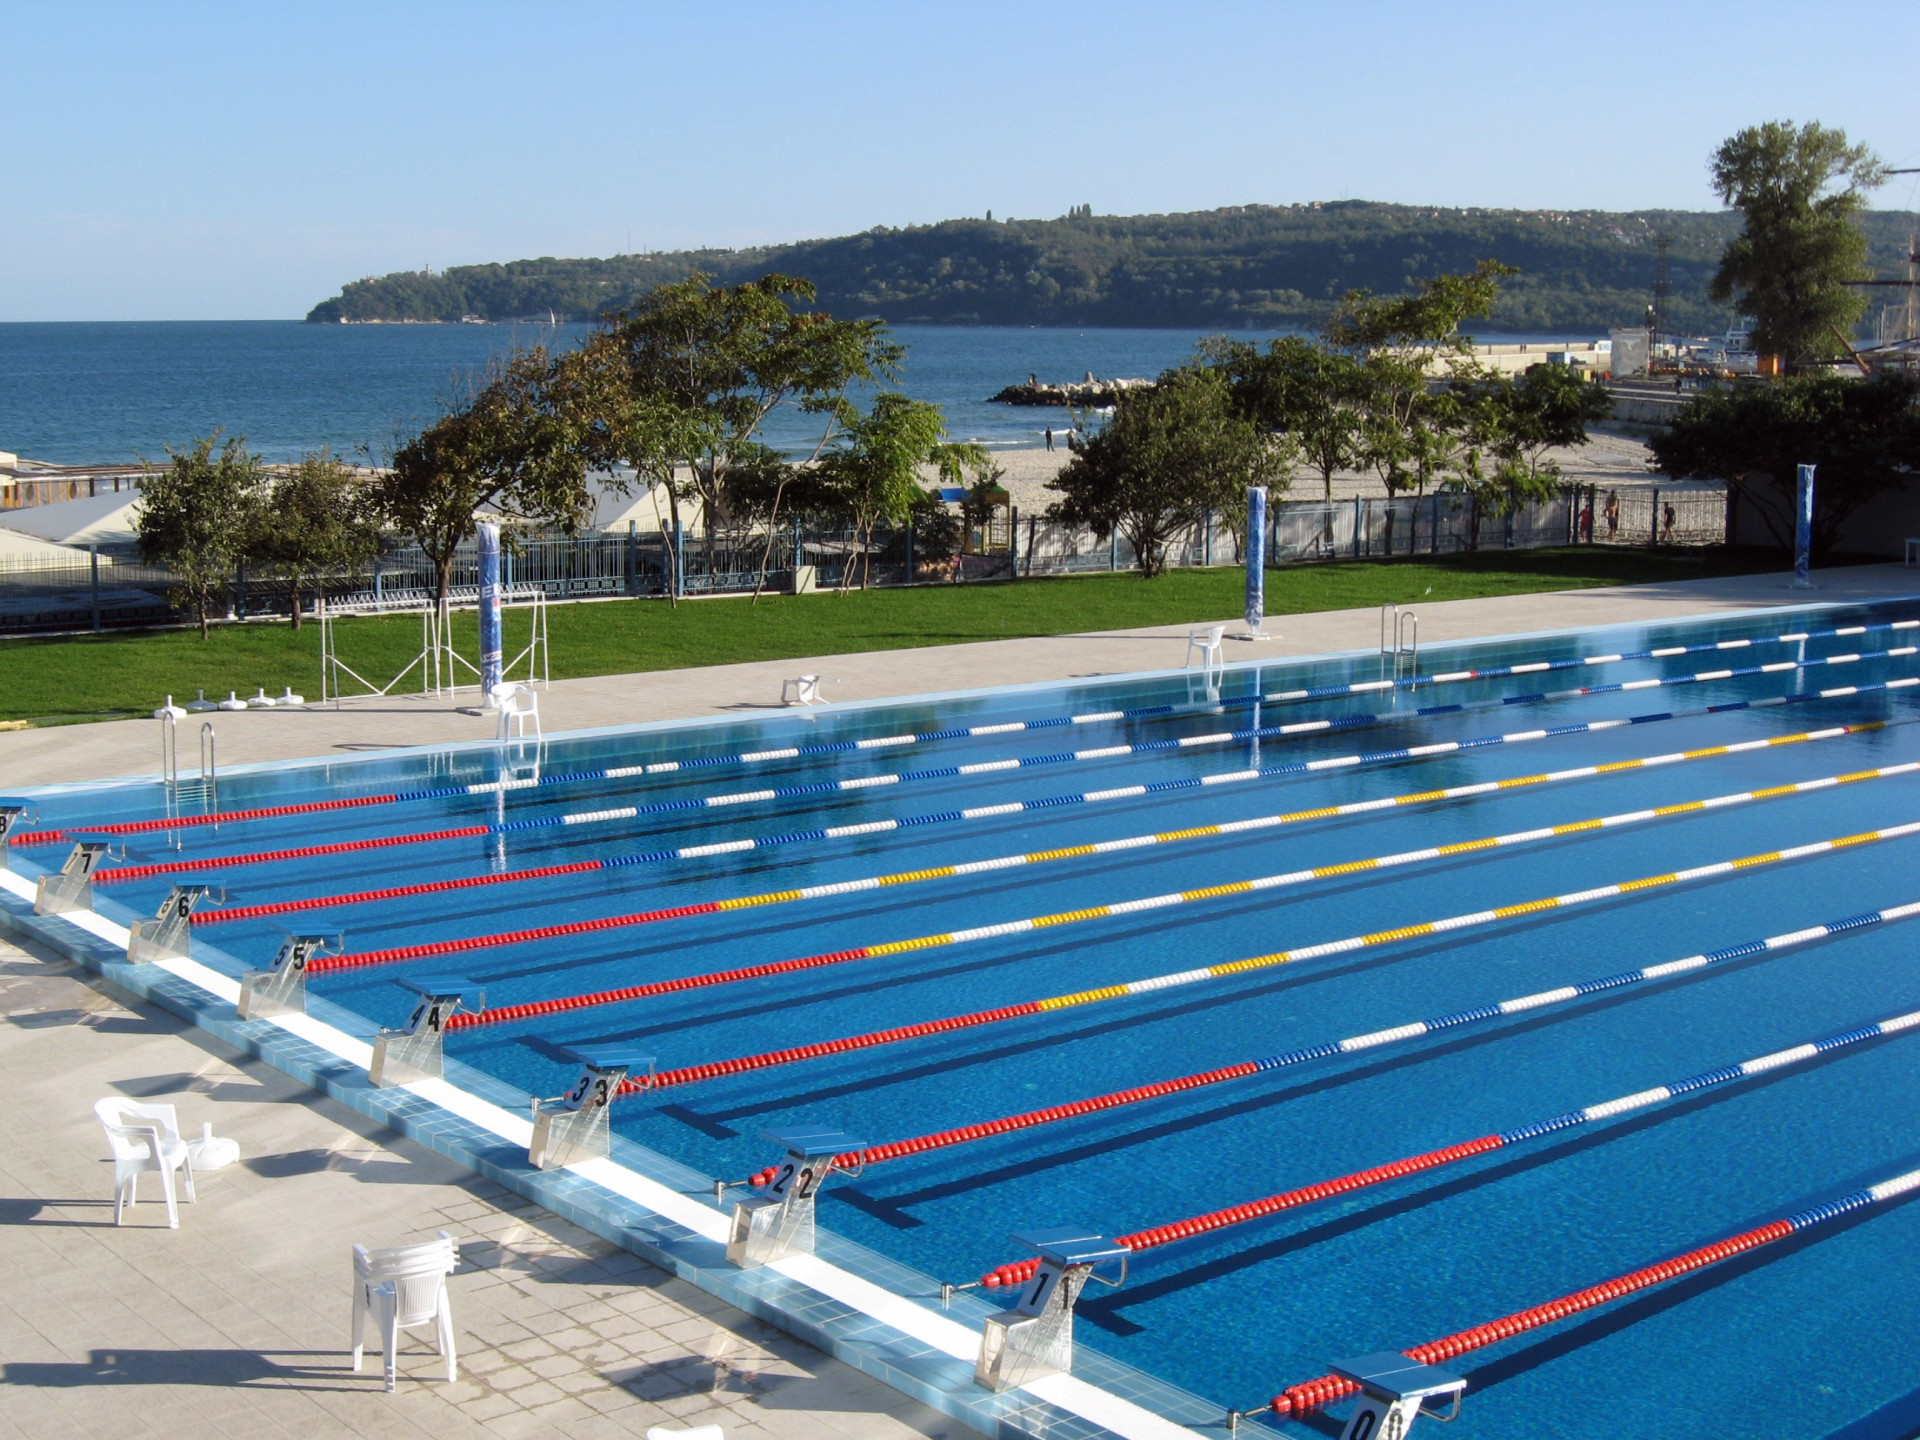 Olympian_Swimming_pool,_Varna